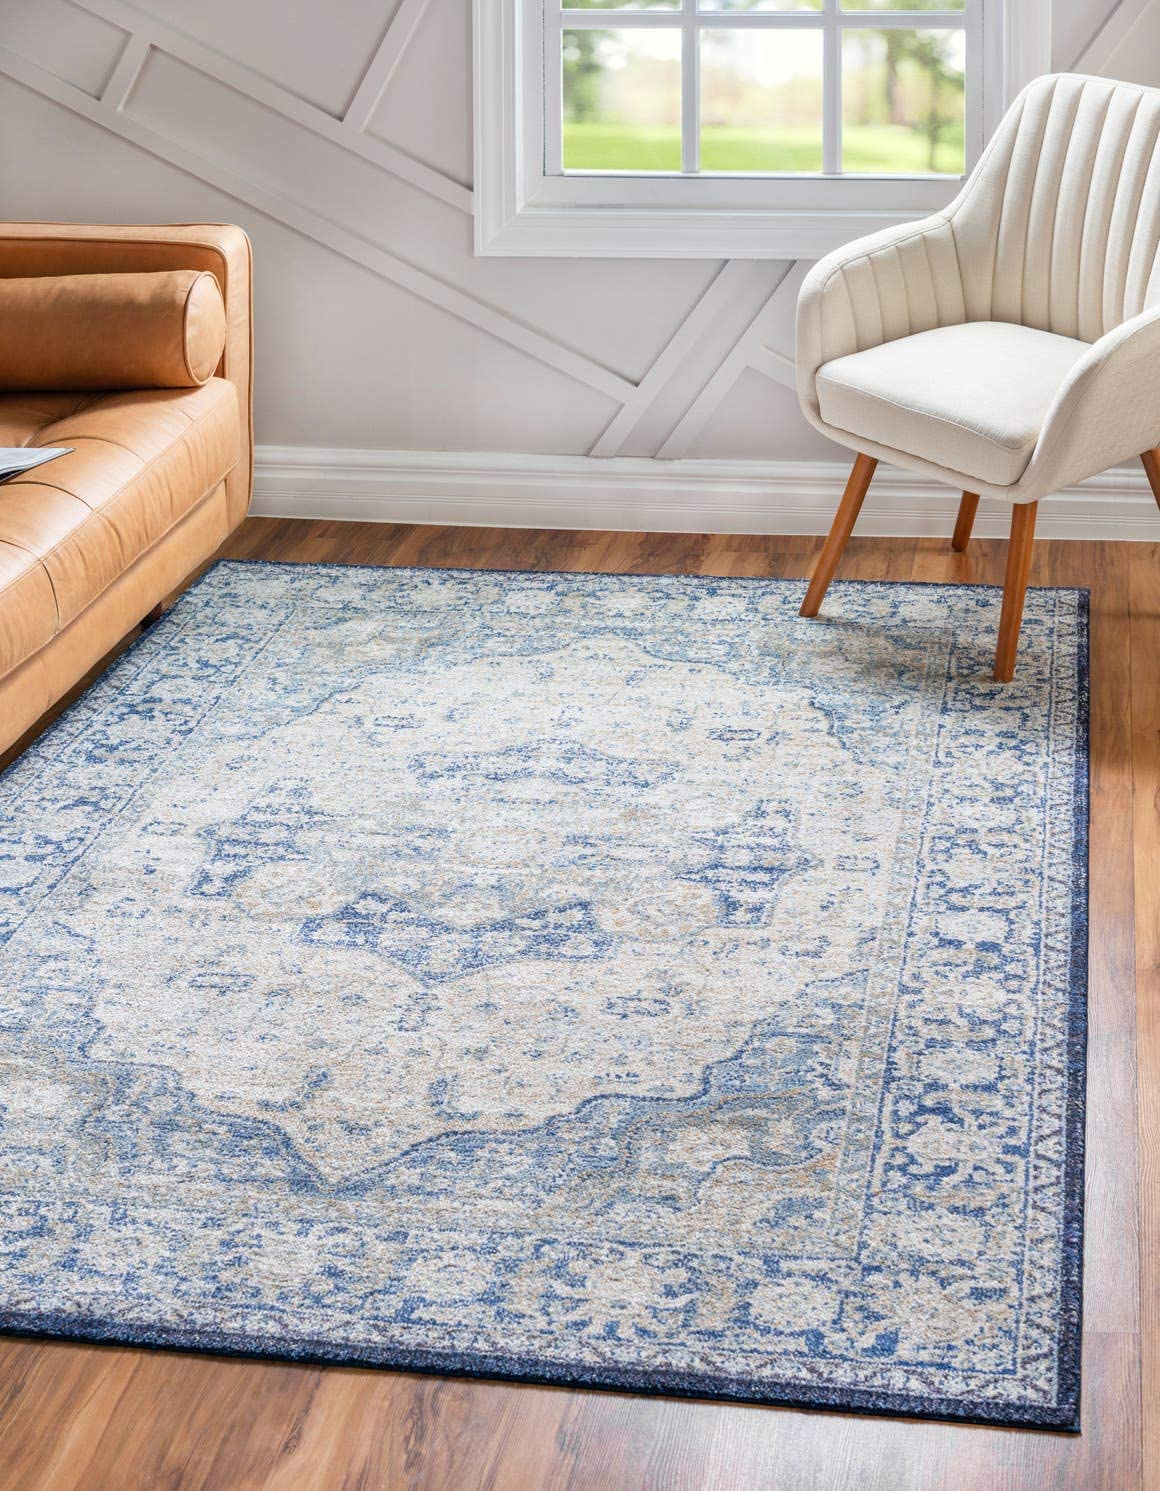 Unique Loom Augustus Collection Boho Traditional Vintage Blue Area Rug 9 0 x 12 0